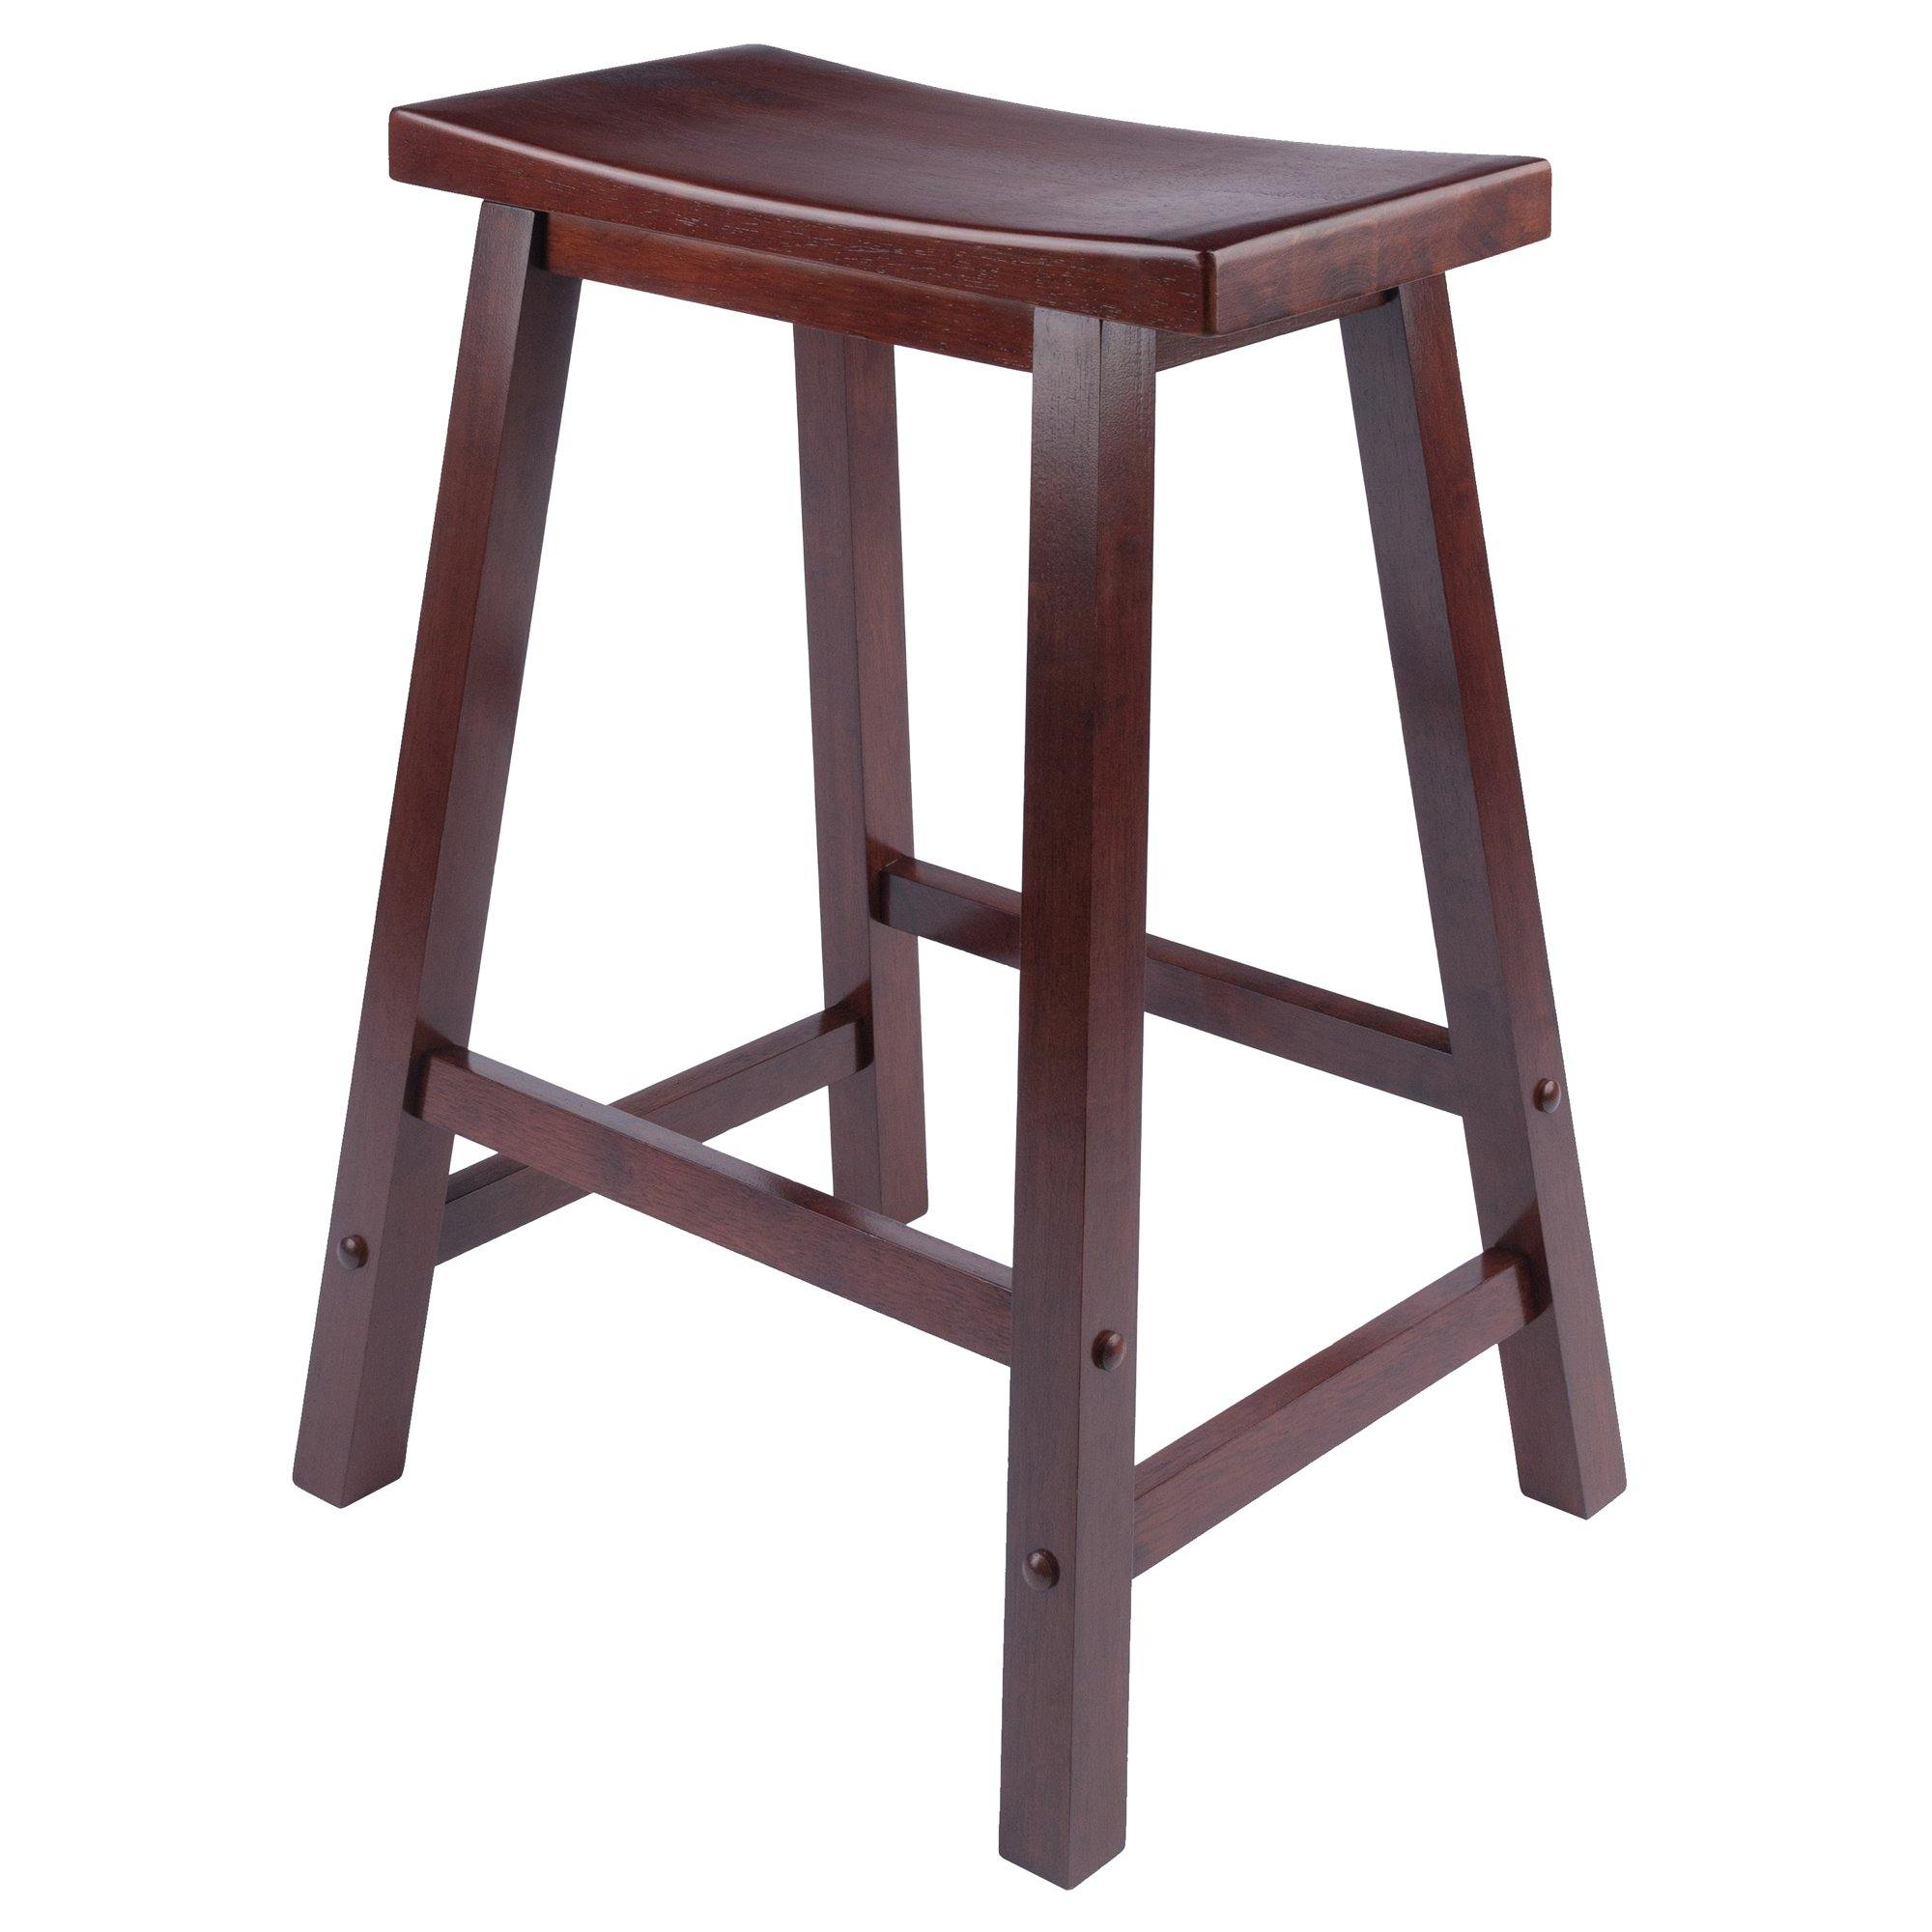 Satori Saddle Seat Counter Stool, Walnut - My USA Furniture